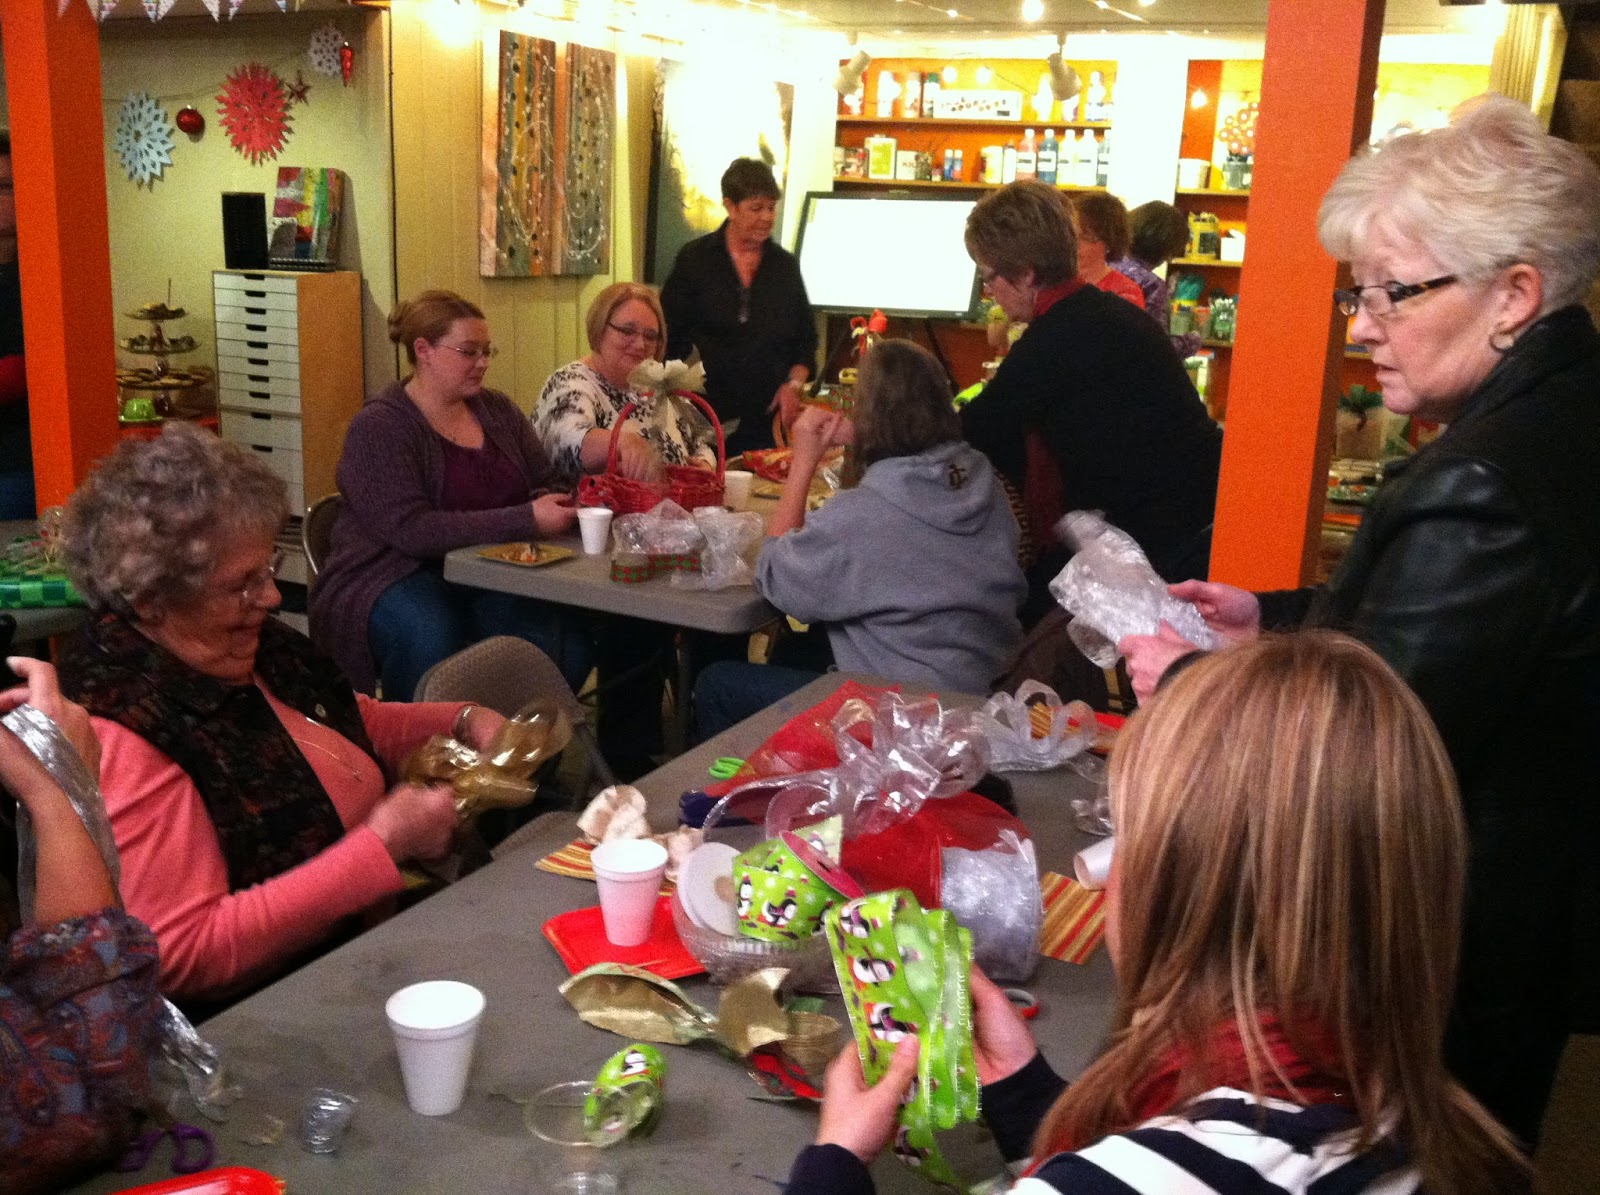 Christmas bow making workshop at Messy Palette Art Studio